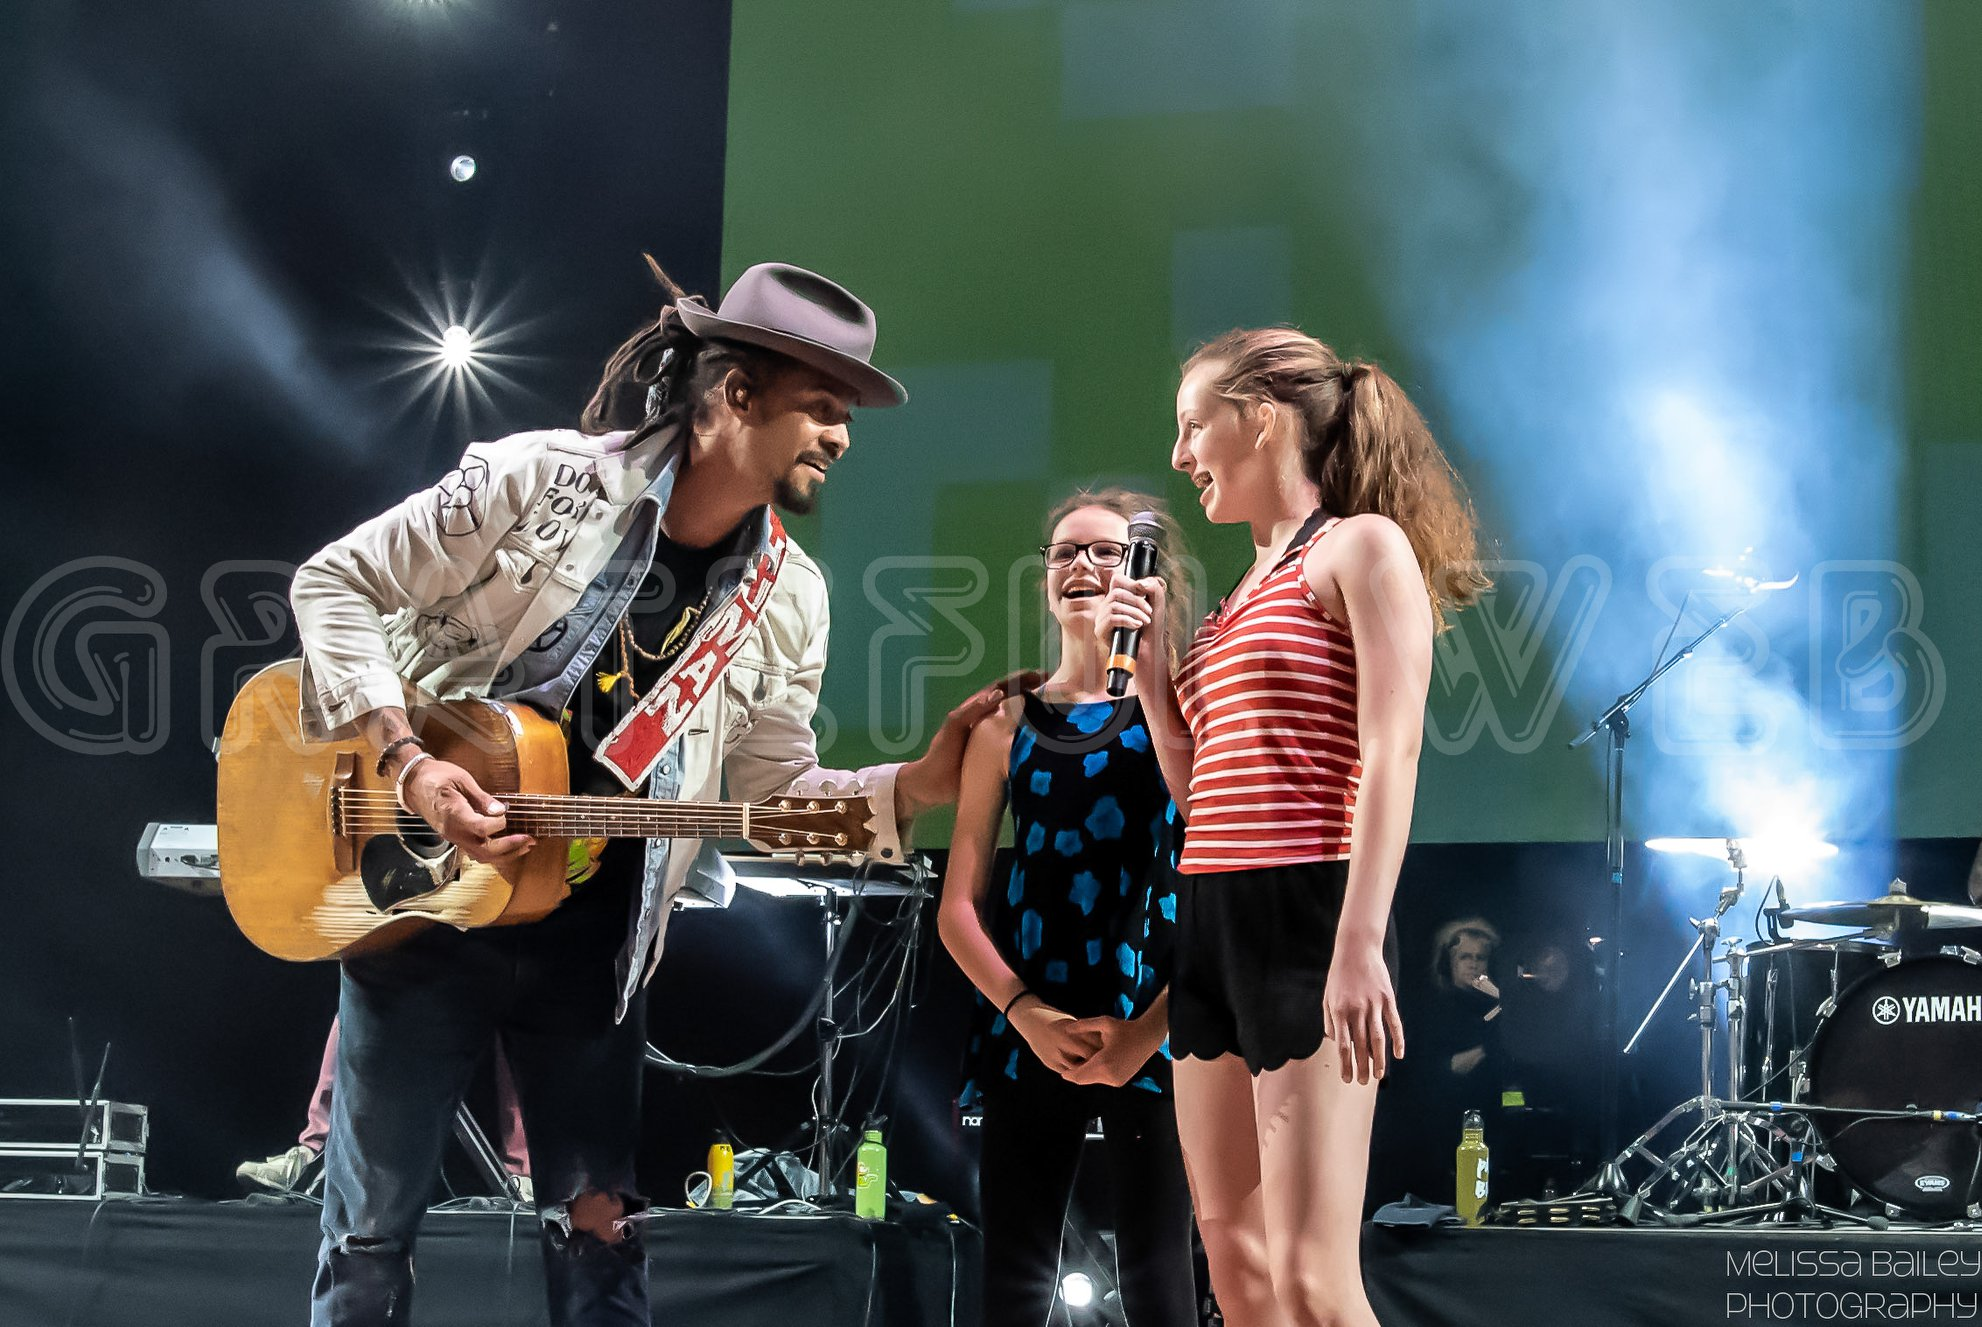 Michael Franti introduces some wonderful young singers to the stage